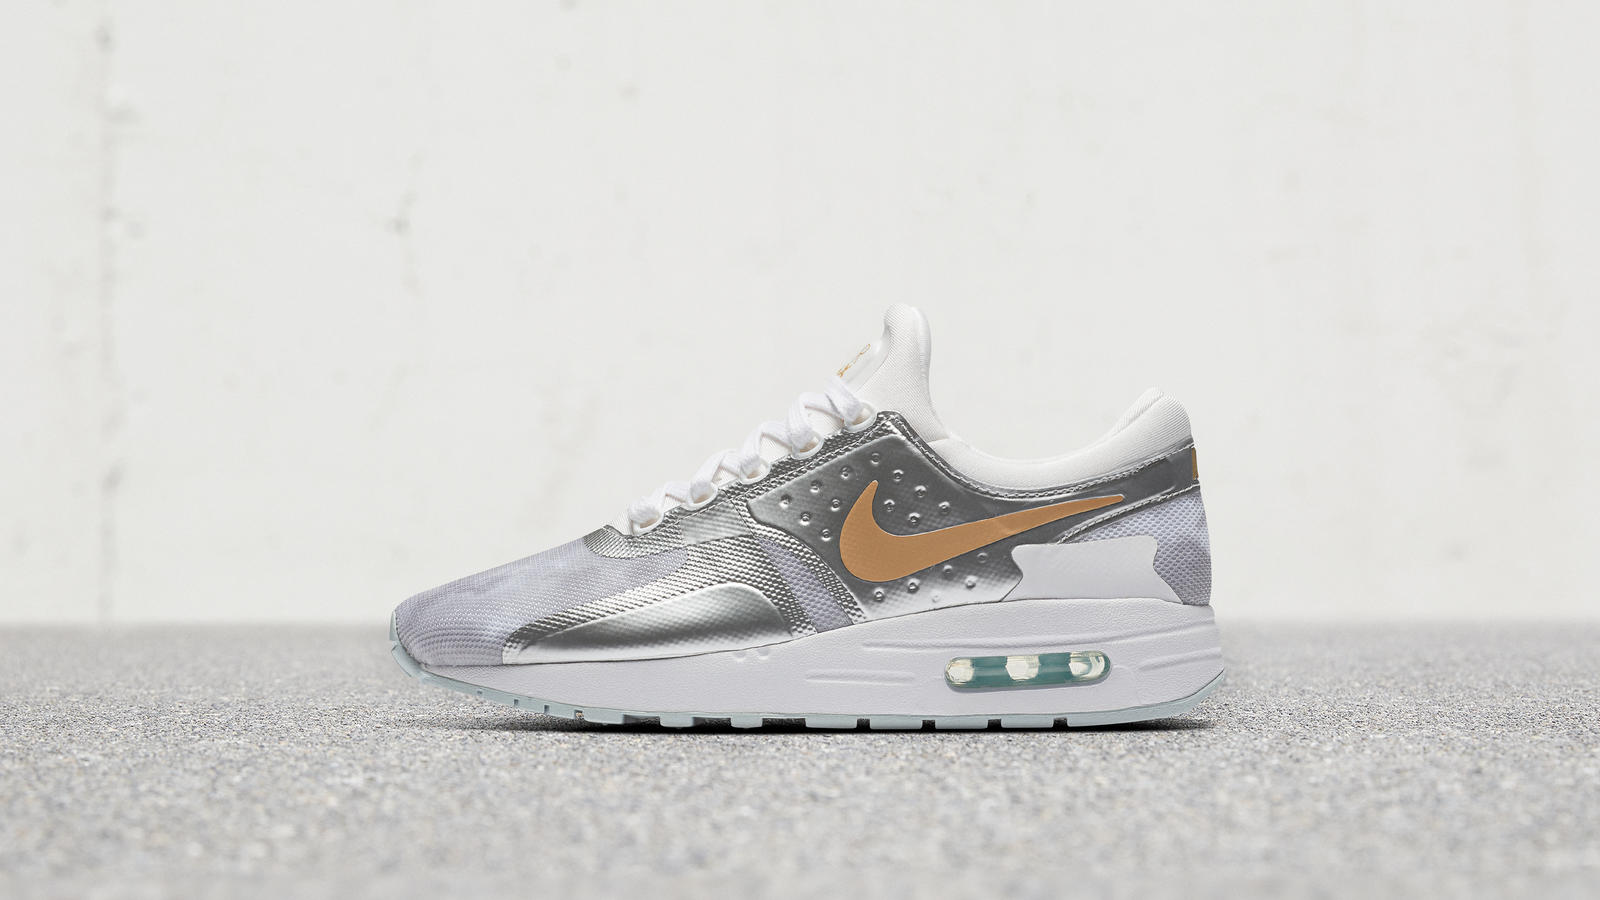 e80bde9eee Sam Gordon's Nike Air Max Zero is available January 20 in grade school sizes  on nike.com in North America.